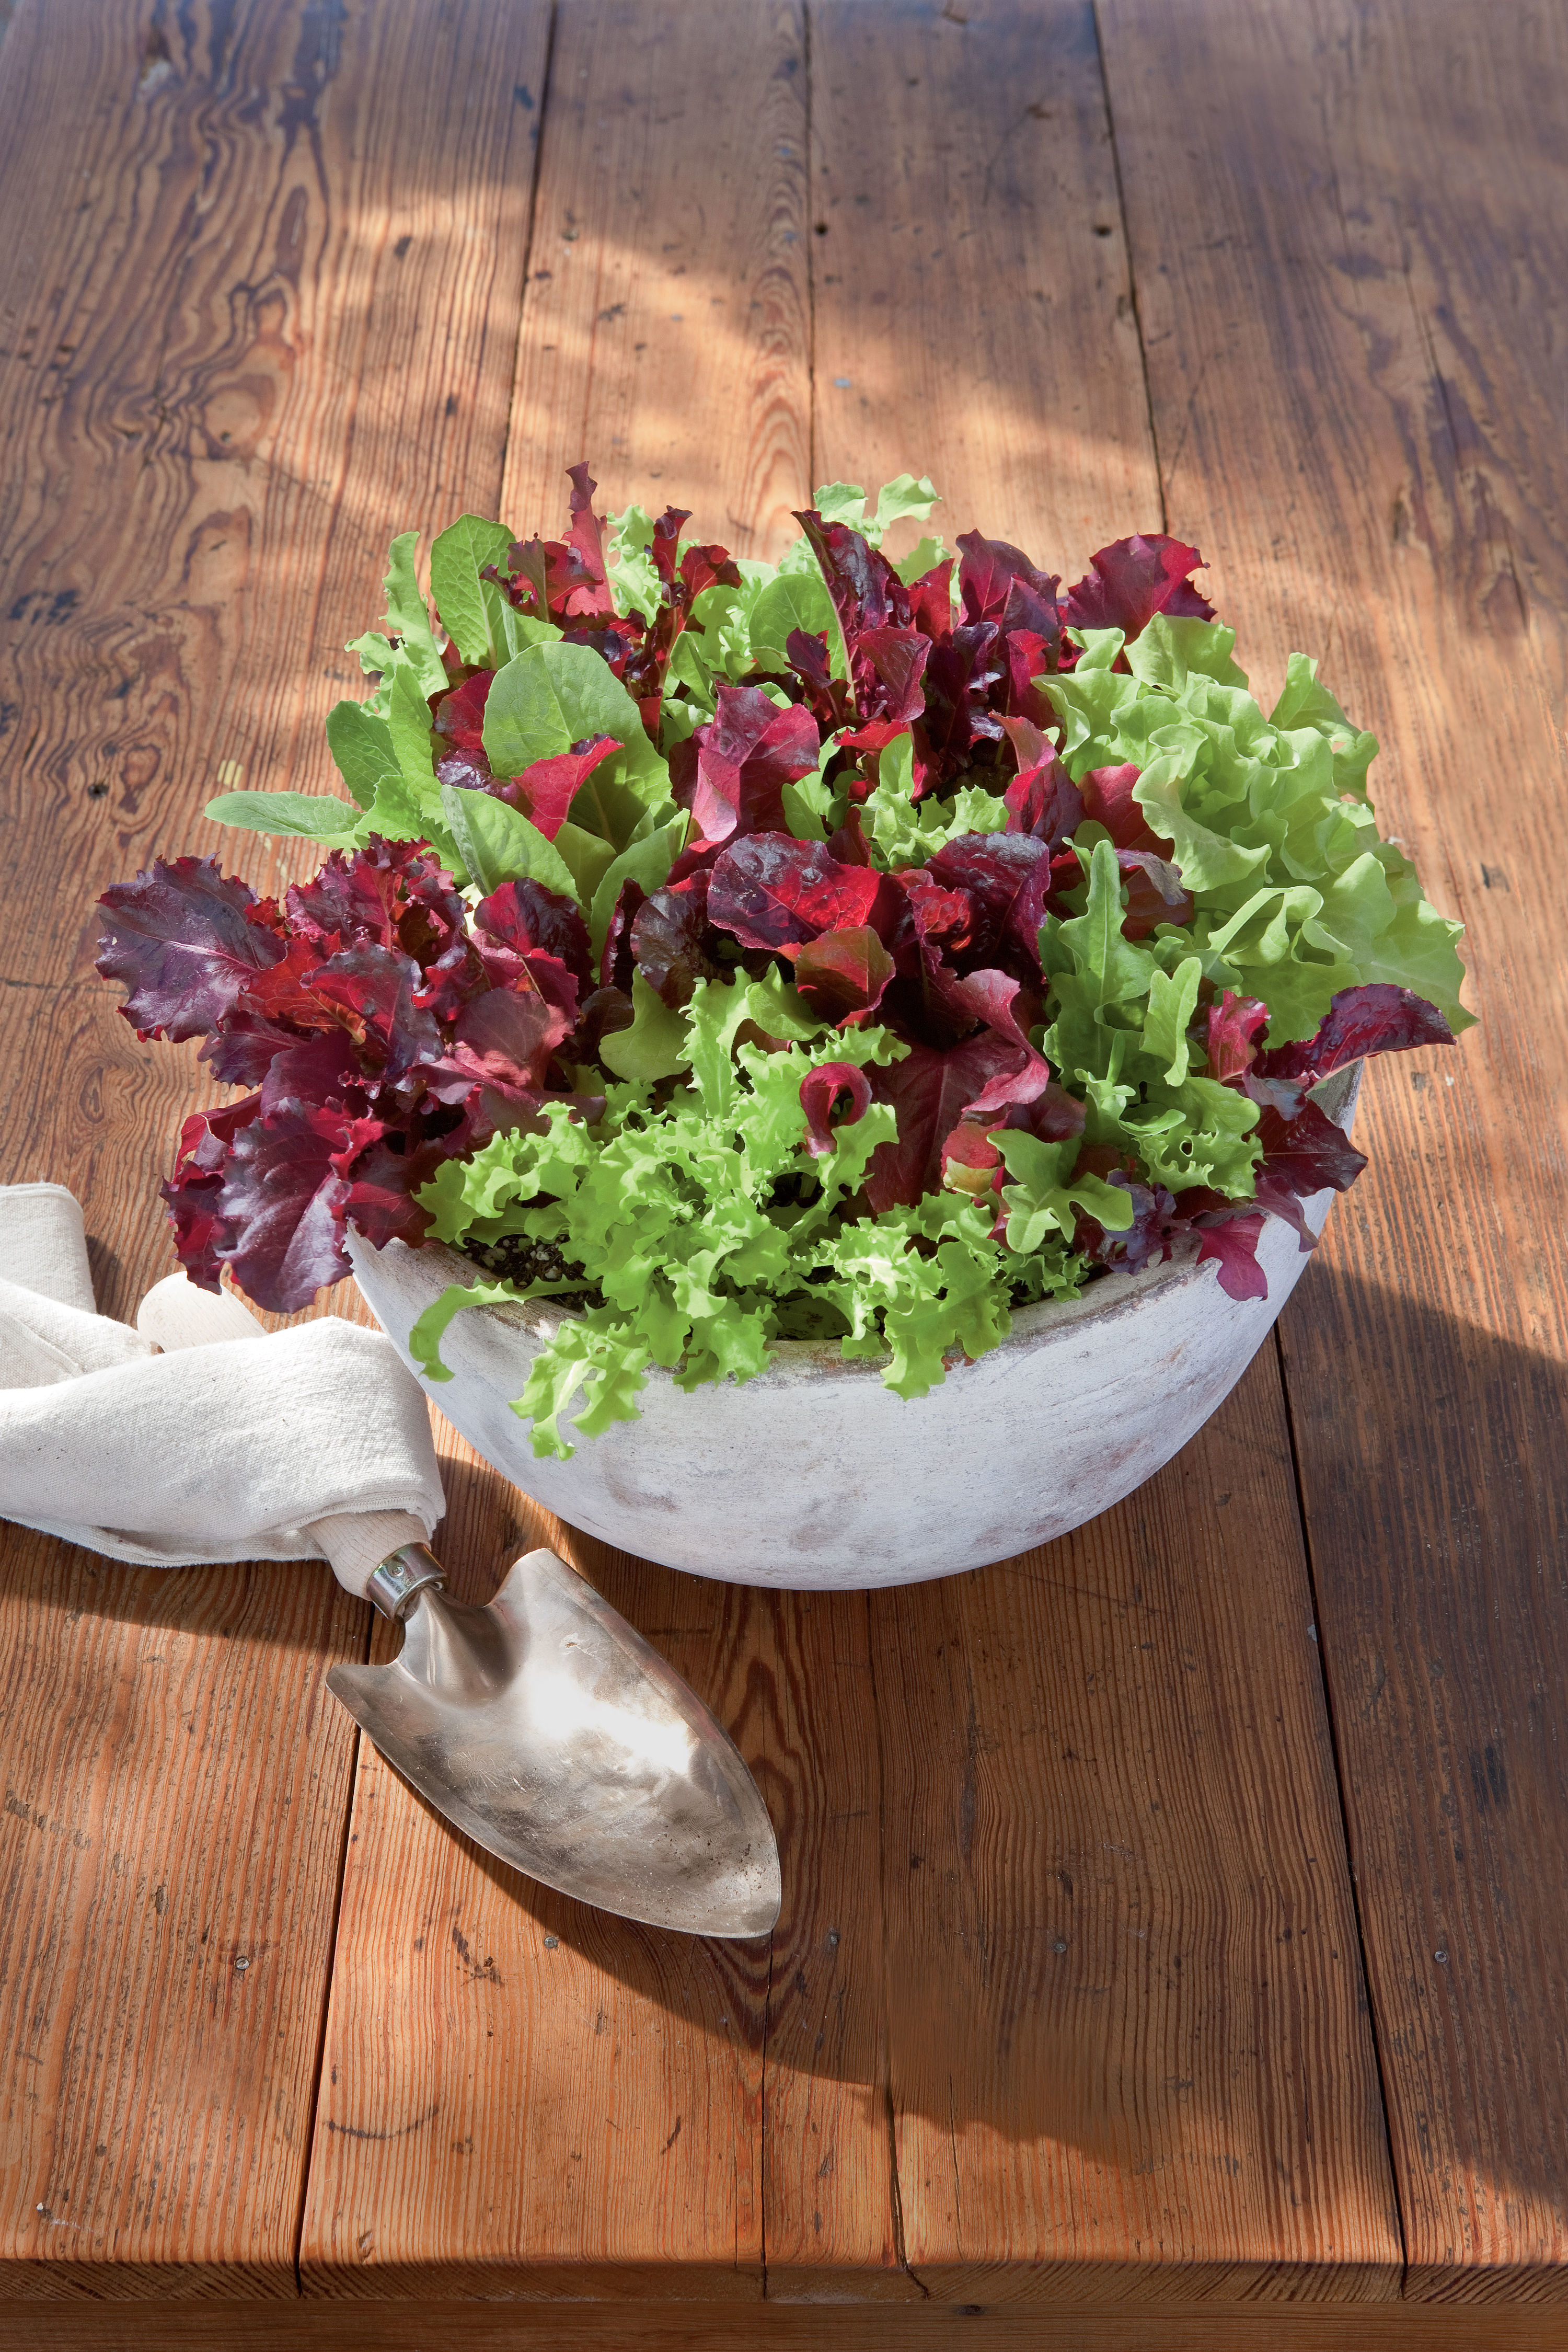 Gardening 101: Growing Fresh Lettuce